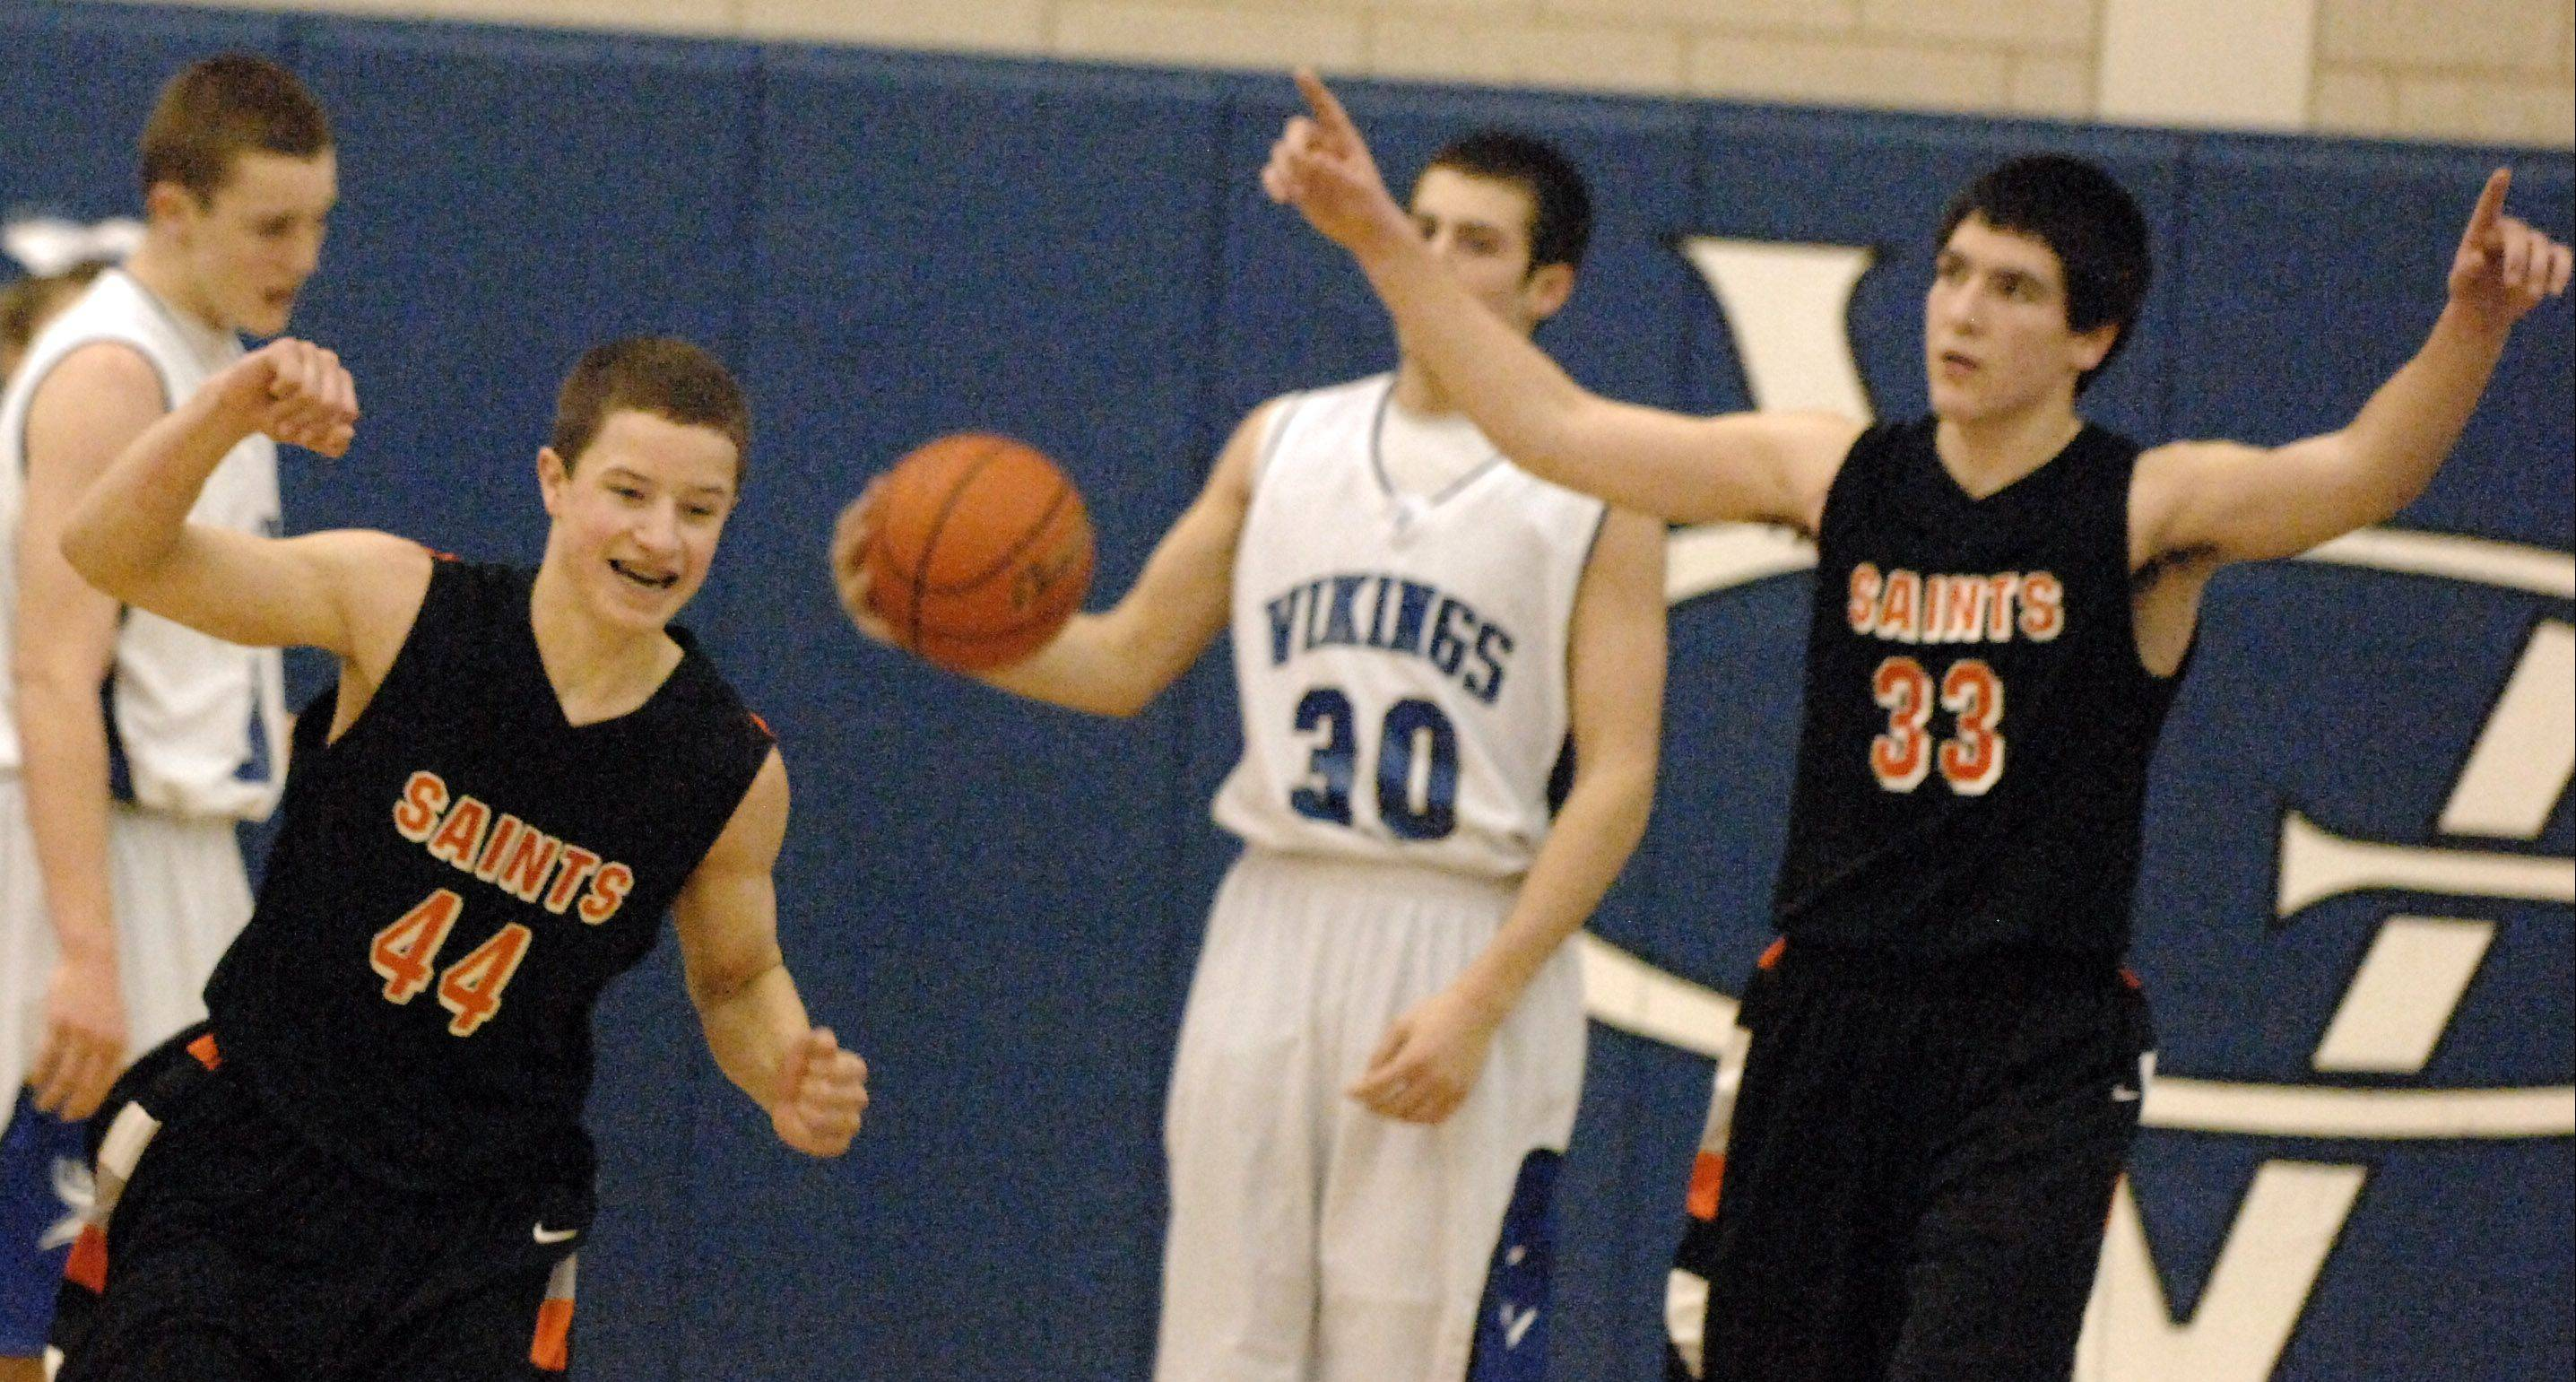 St. Charles East survives Geneva in 2 OTs